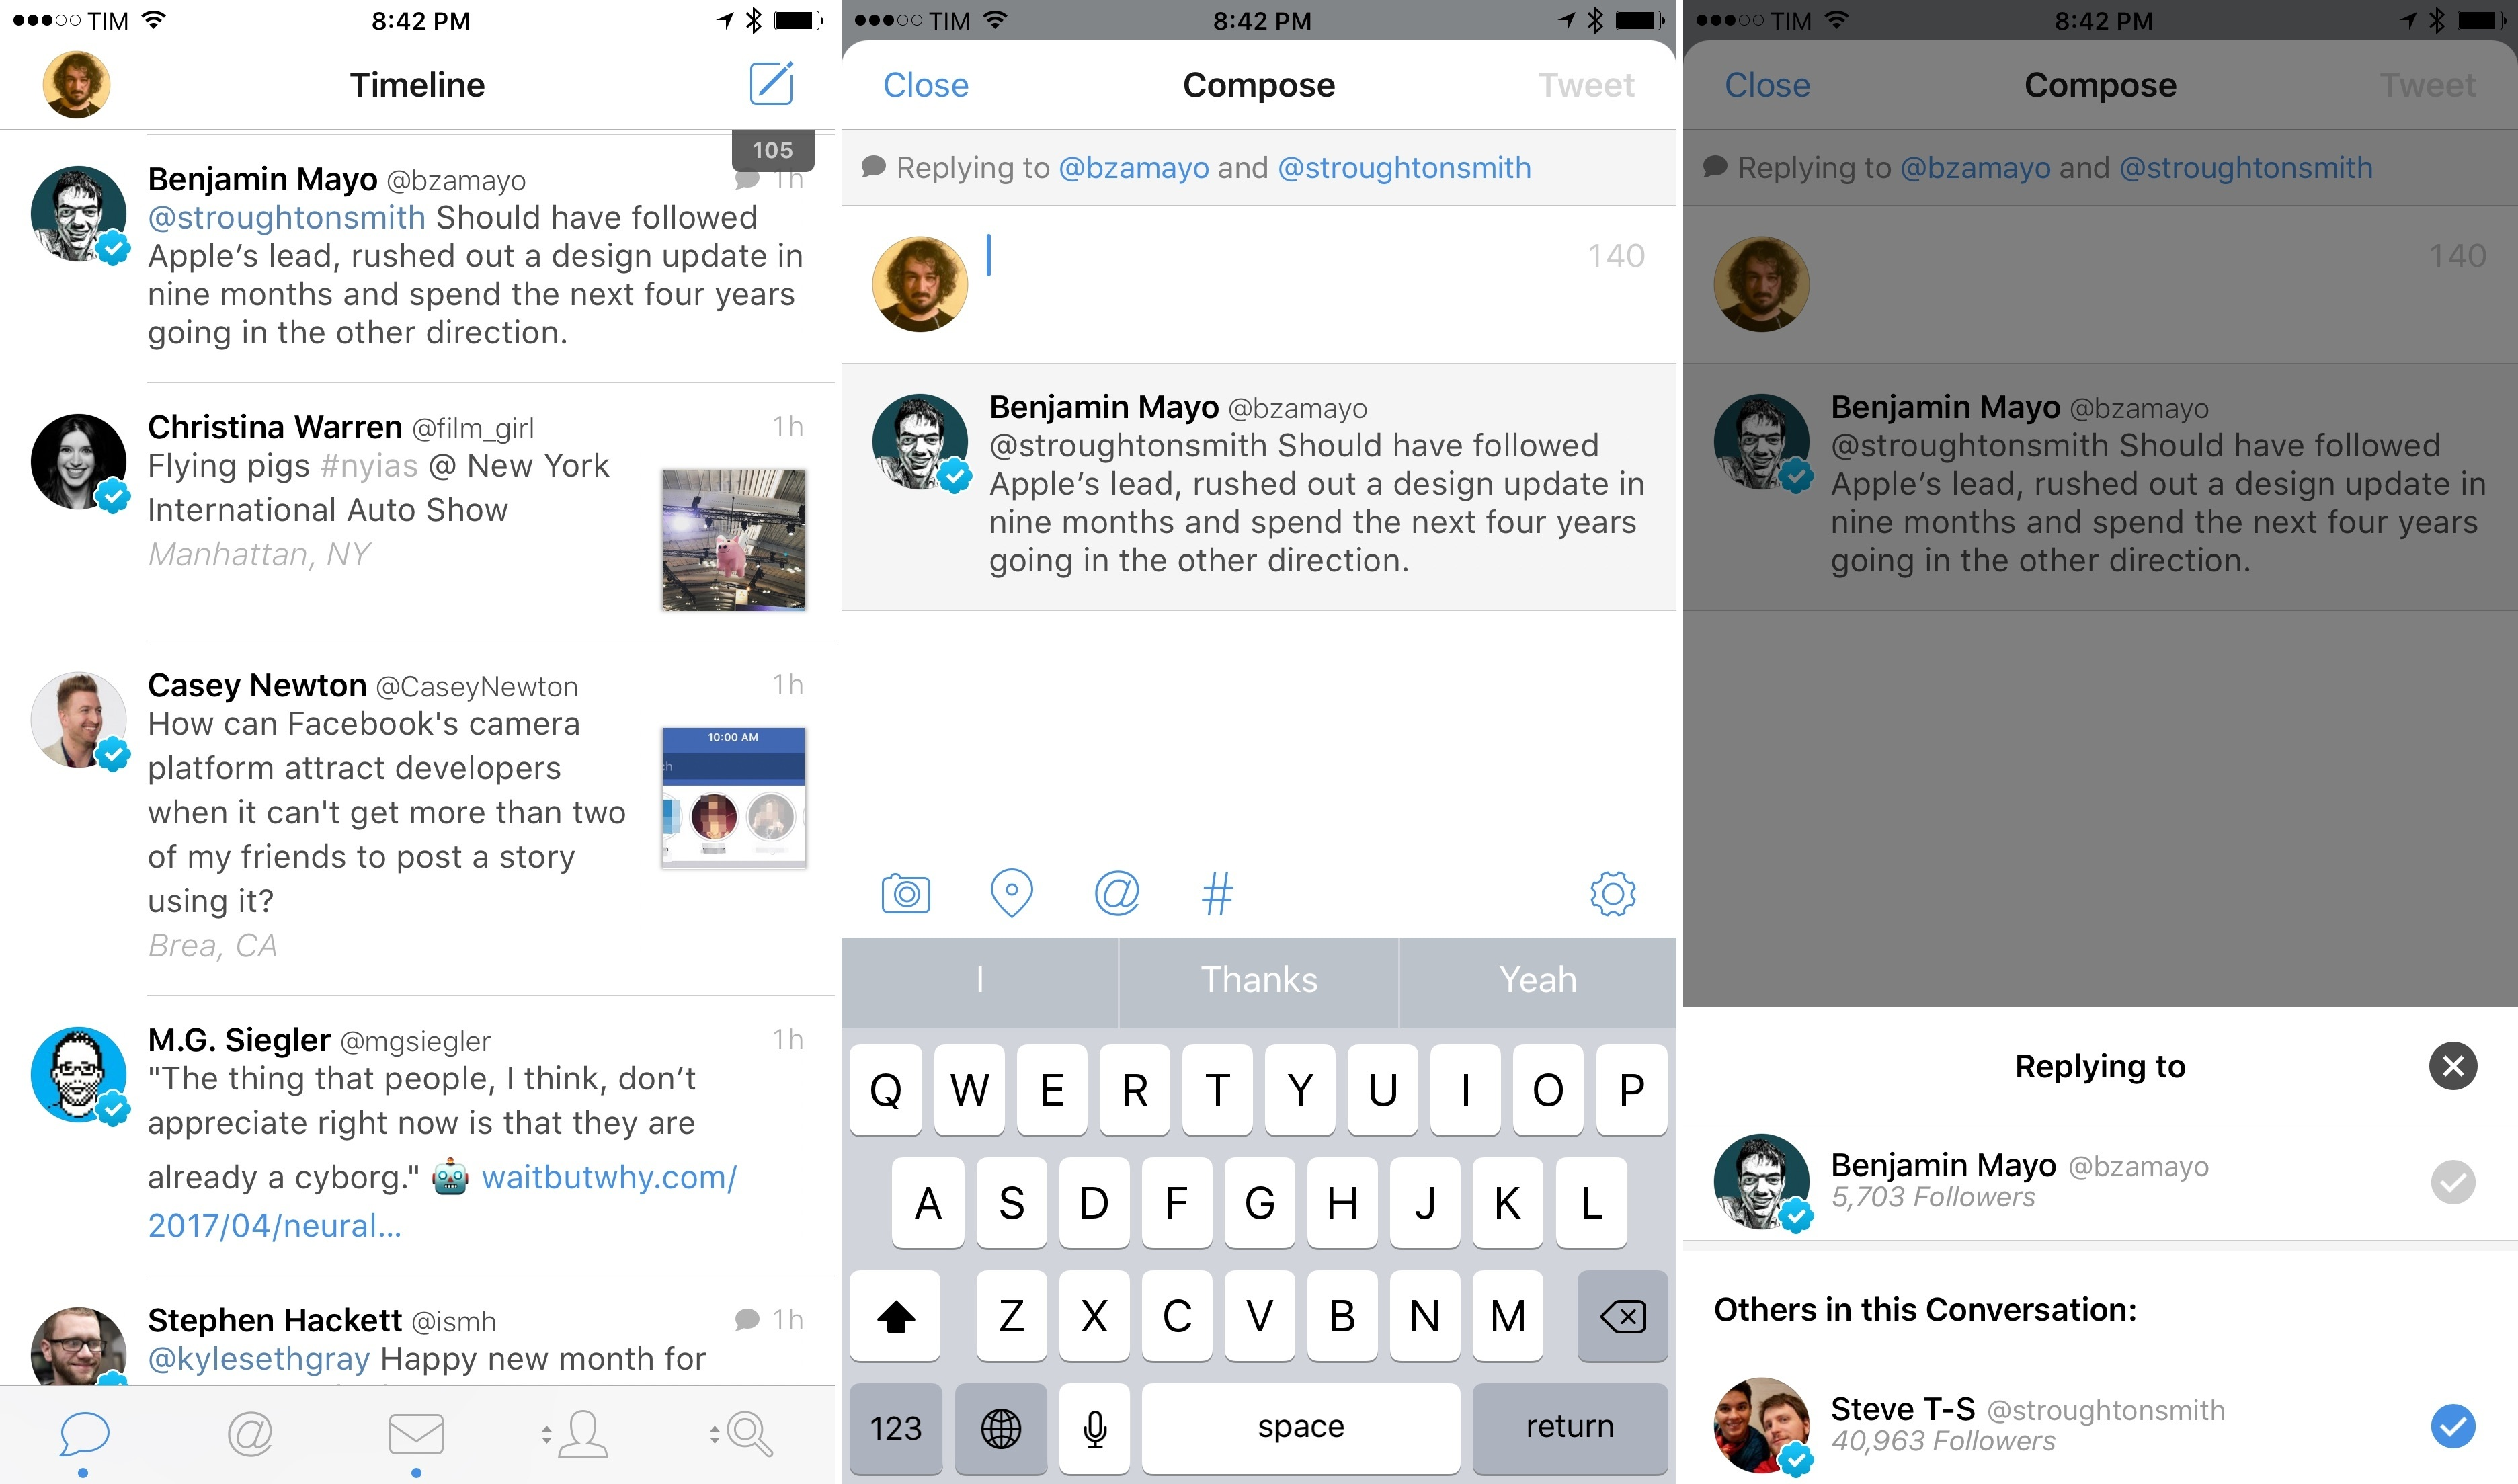 The new compose UI for replies in Tweetbot 4.6.